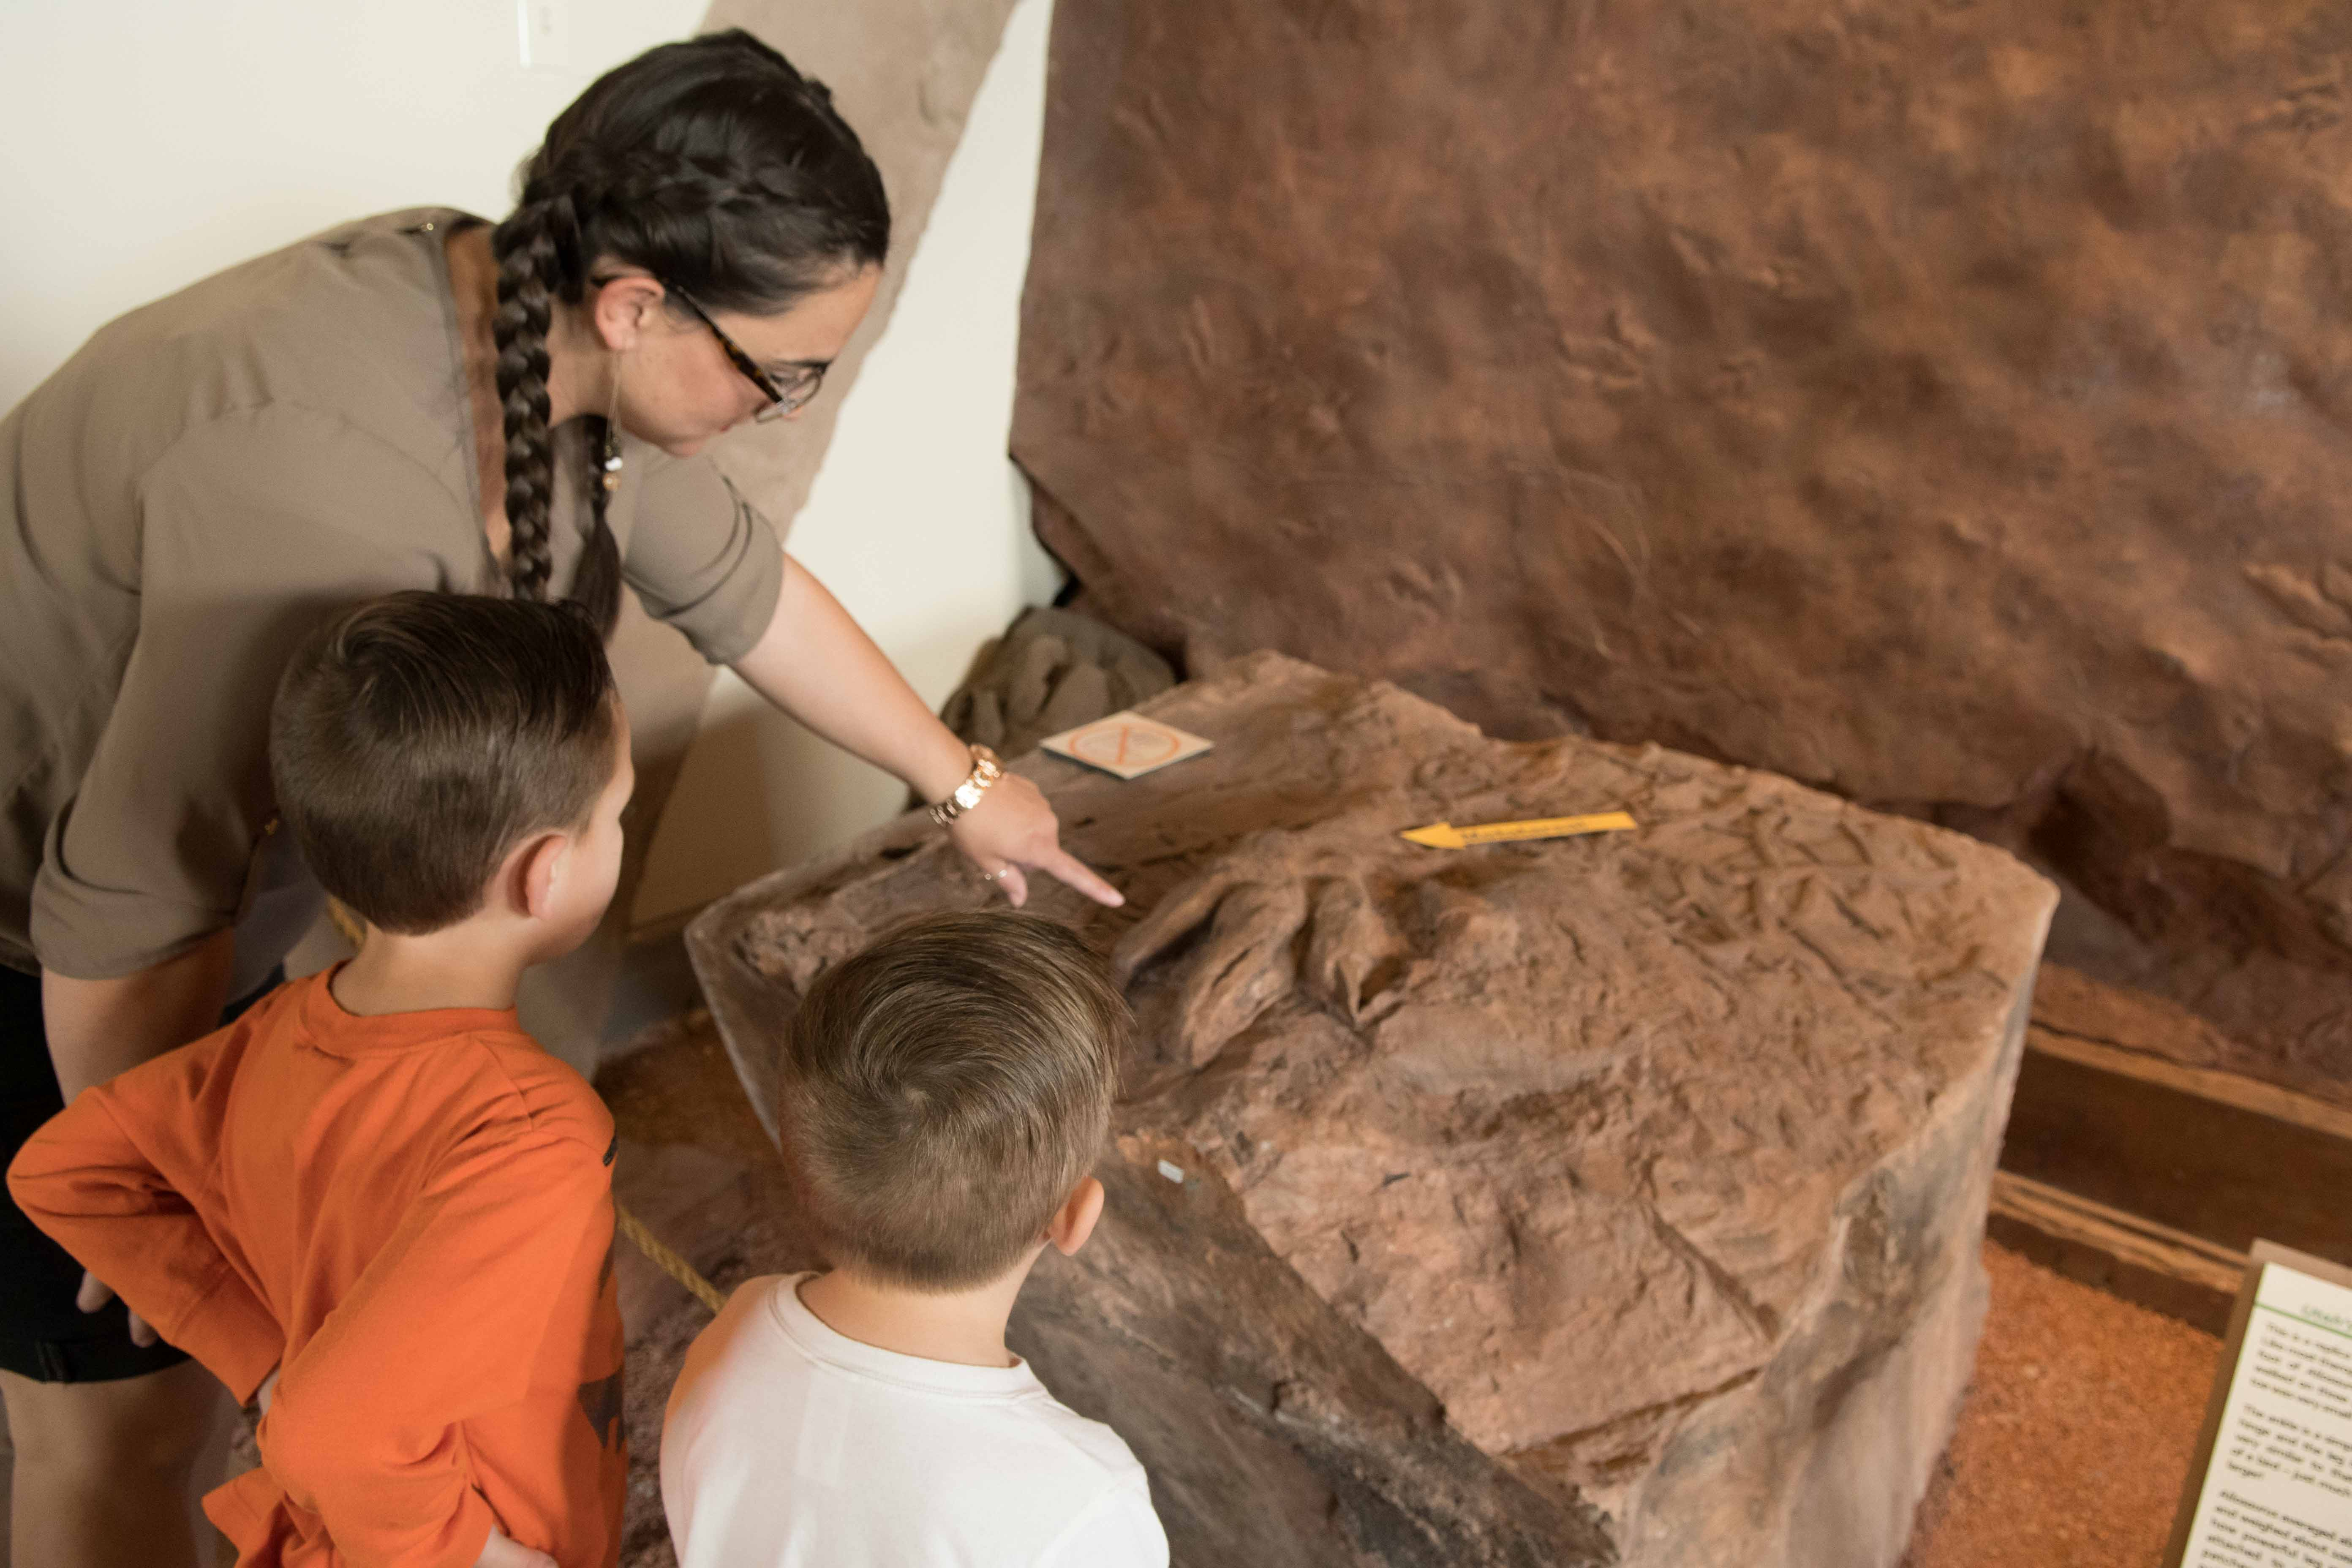 Kimber Bringhurst and boys inspect dinosaur natural tracks casting, Dinosaur Discovery Site, St. George, Utah, Oct. 31, 2016 | Photo by and courtesy of Jim Lillywhite, St. George News